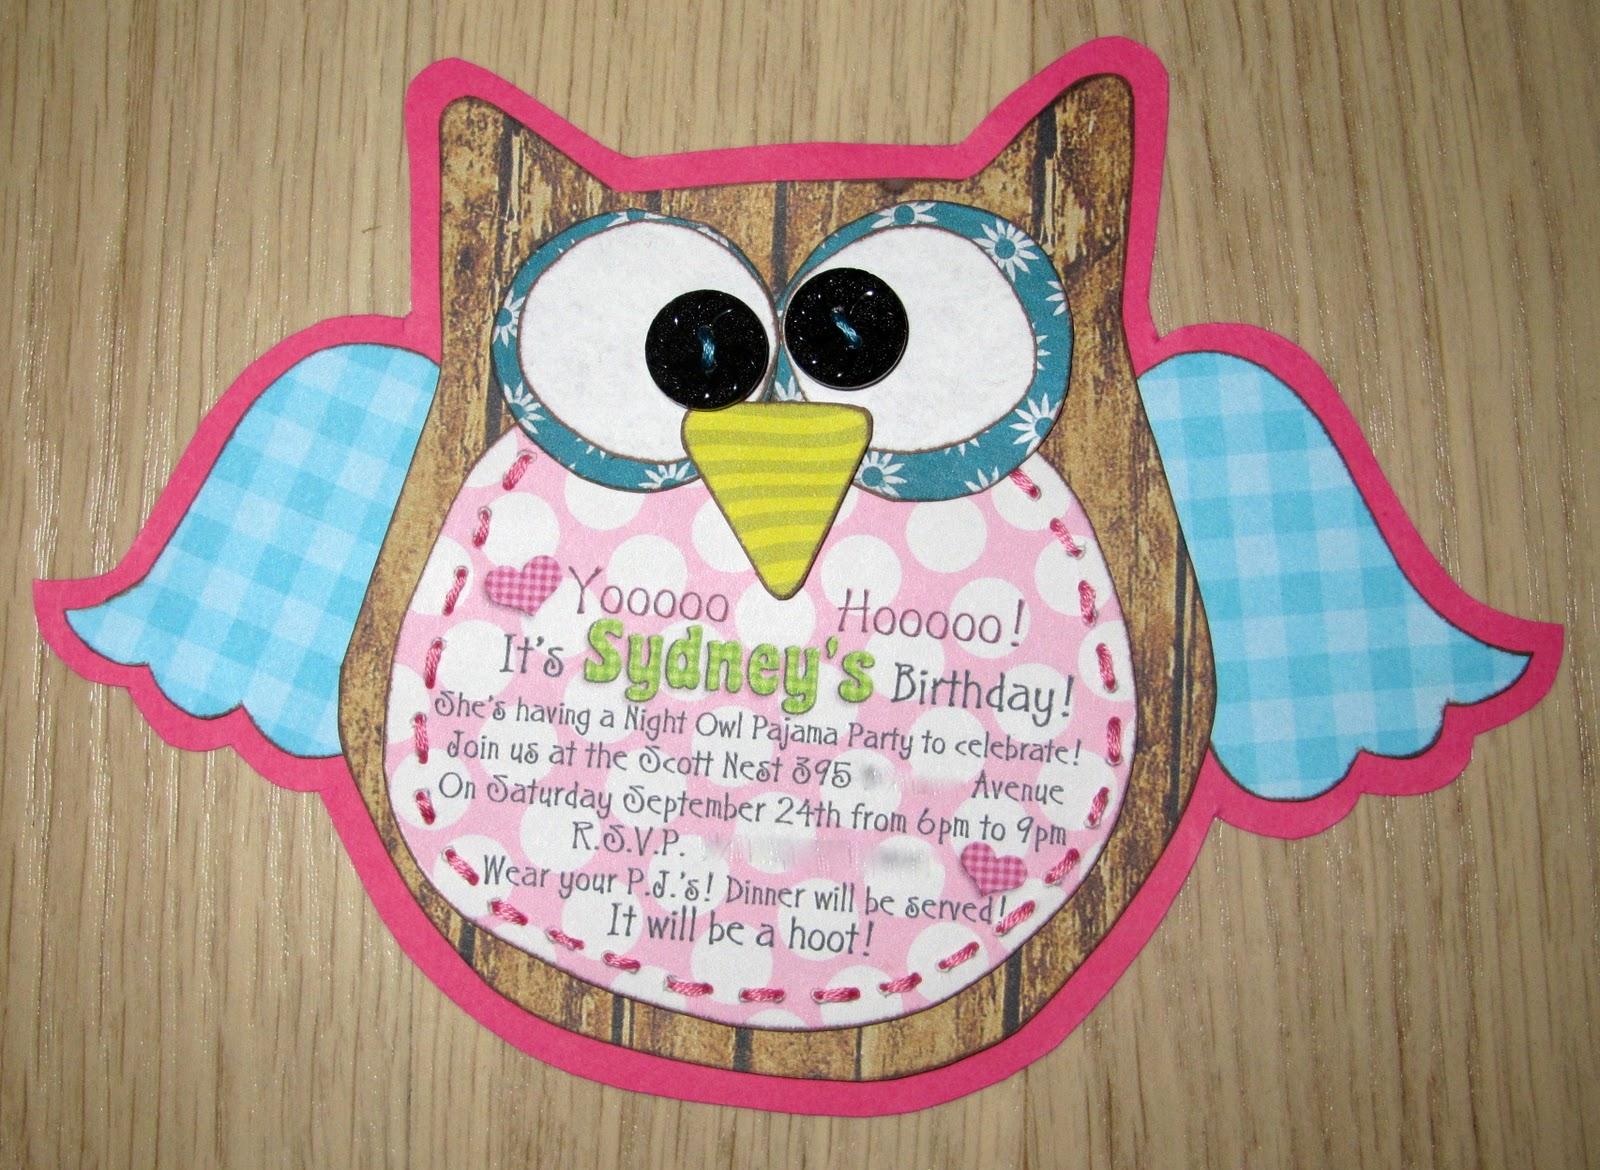 Too Stinkin Cute REAL PARTY Night Owl Birthday Party